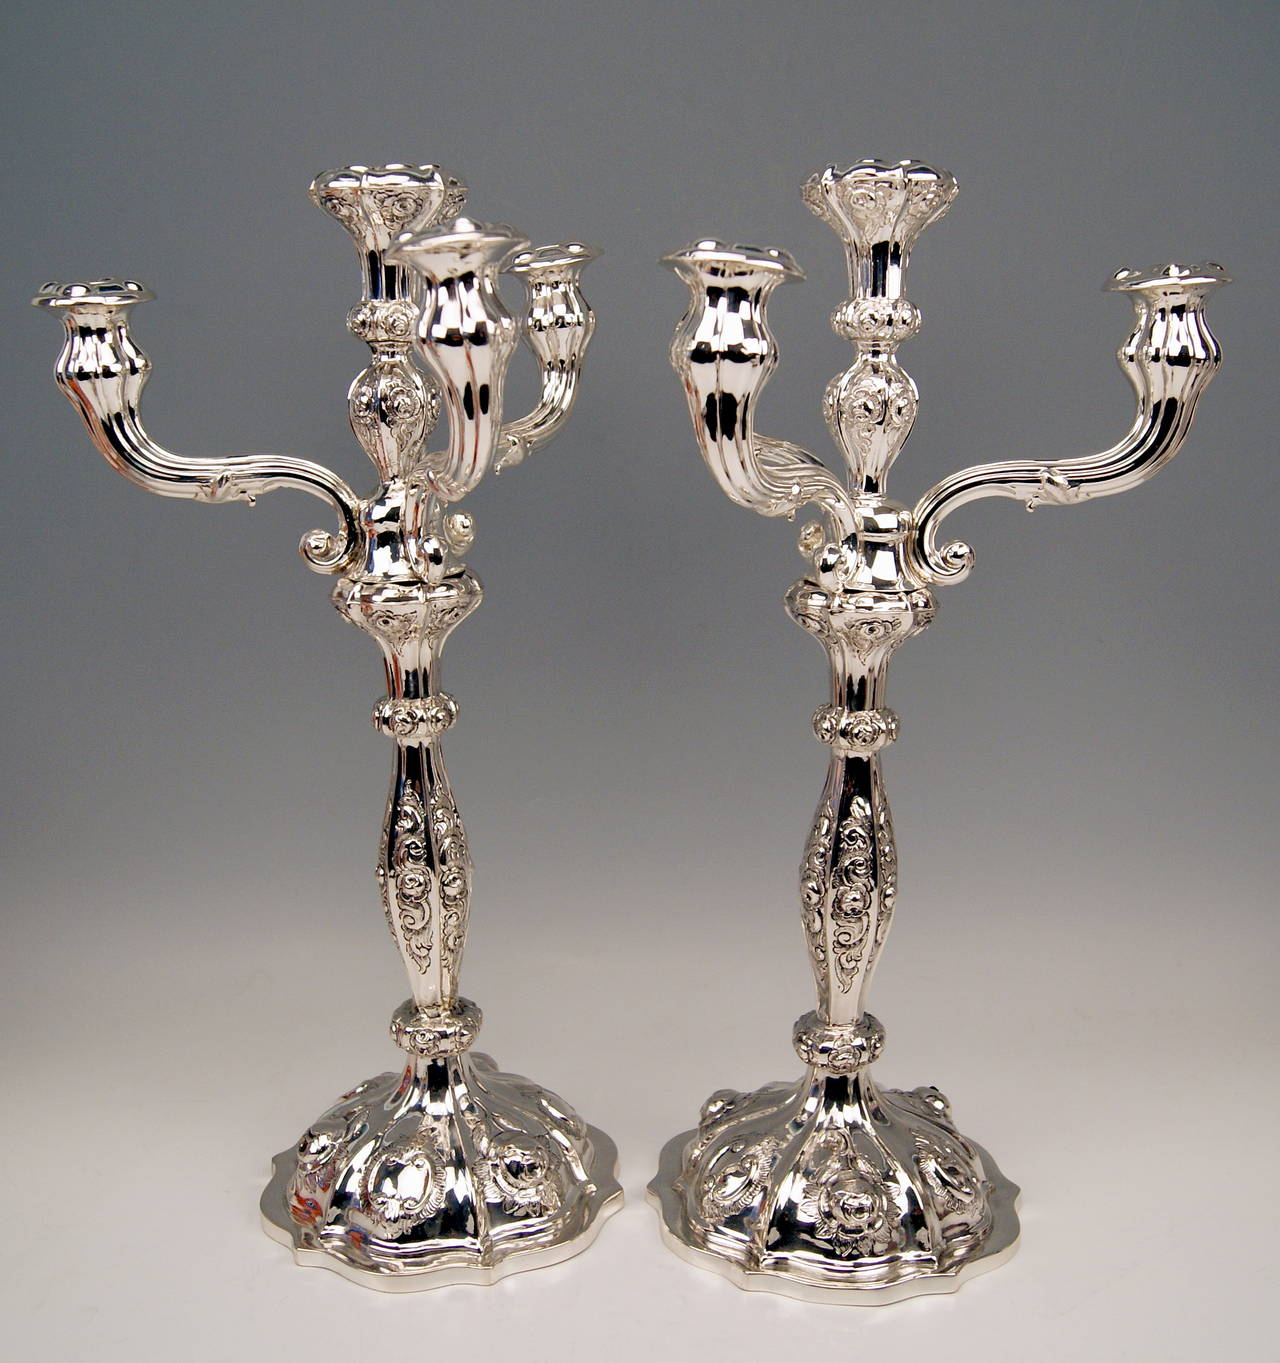 Gorgeous Viennese Silver Pair of Tall Candlesticks of finest manufacturing quality as well as of most elegant appearance. These candlesticks were made during   VIENNESE  LATER  BIEDERMEIER  PERIOD. They are abundantly decorated - made in following